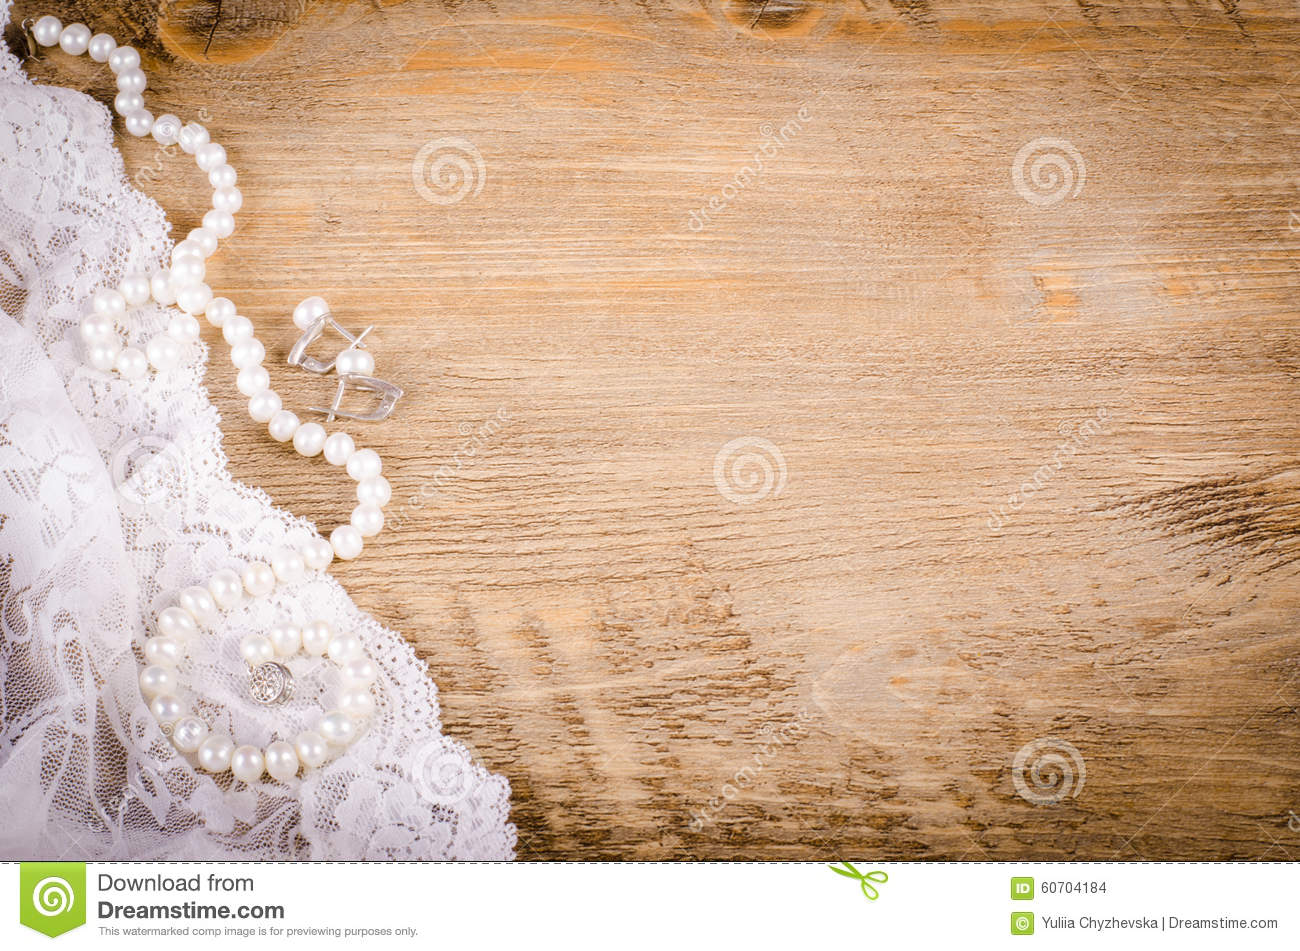 Download Lace Pearl Necklace Earrings On Wooden Background Rustic Stock Photo